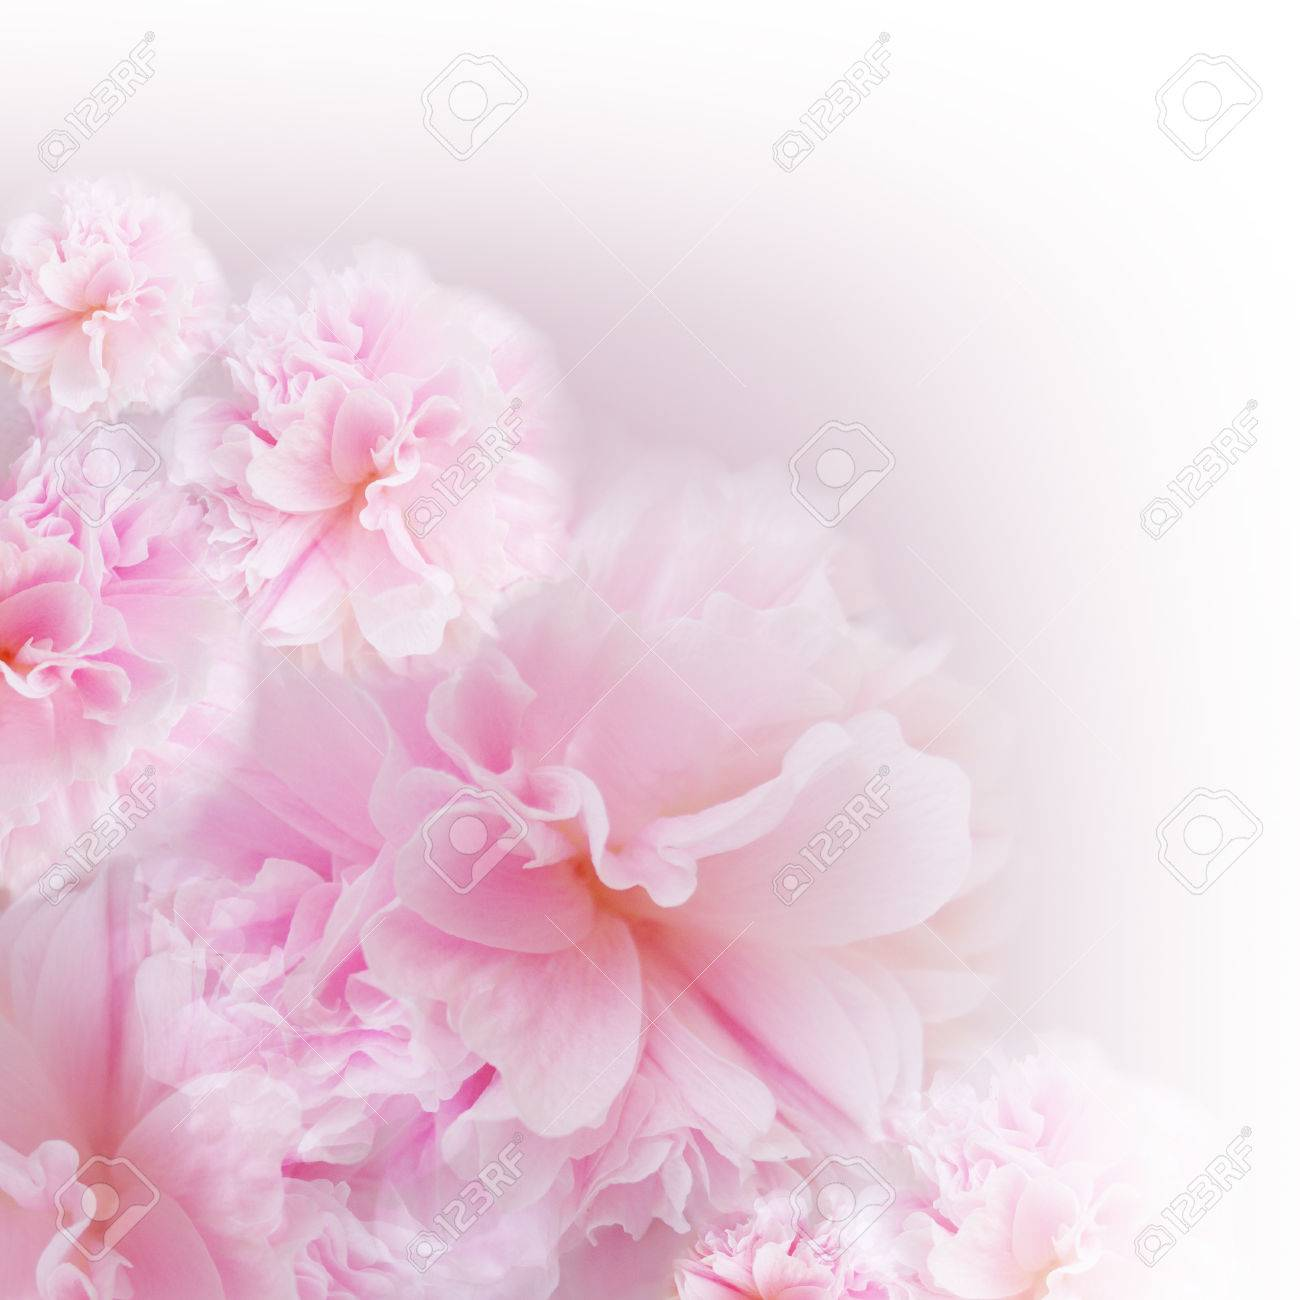 Pink Flower On Soft Pastel Color In Blur Style Blossom Pink